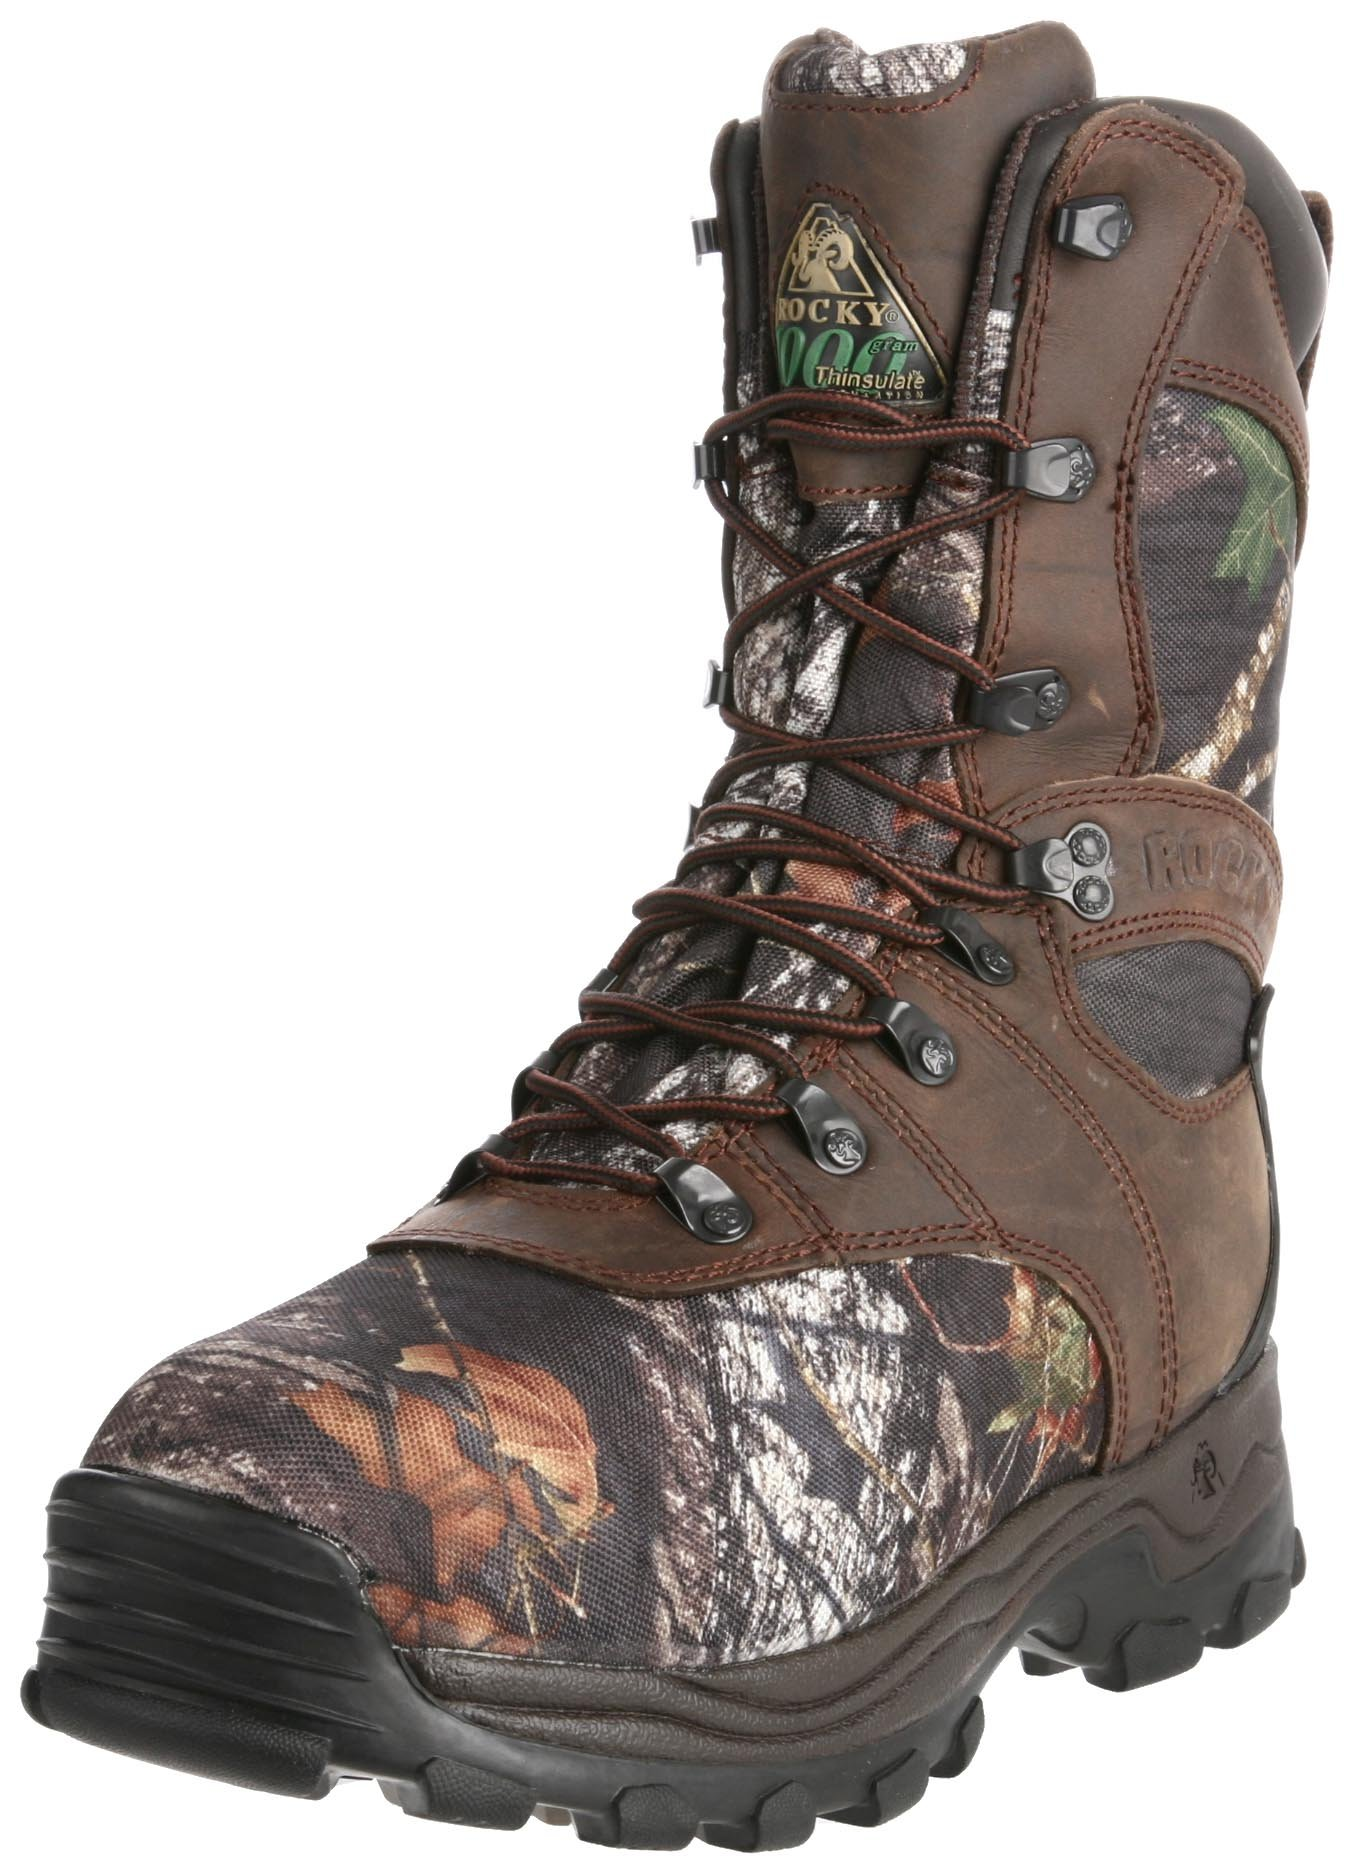 Rocky Men's Sport Utility Pro Hunting Boot,Mossy Oak,12 W US by Rocky